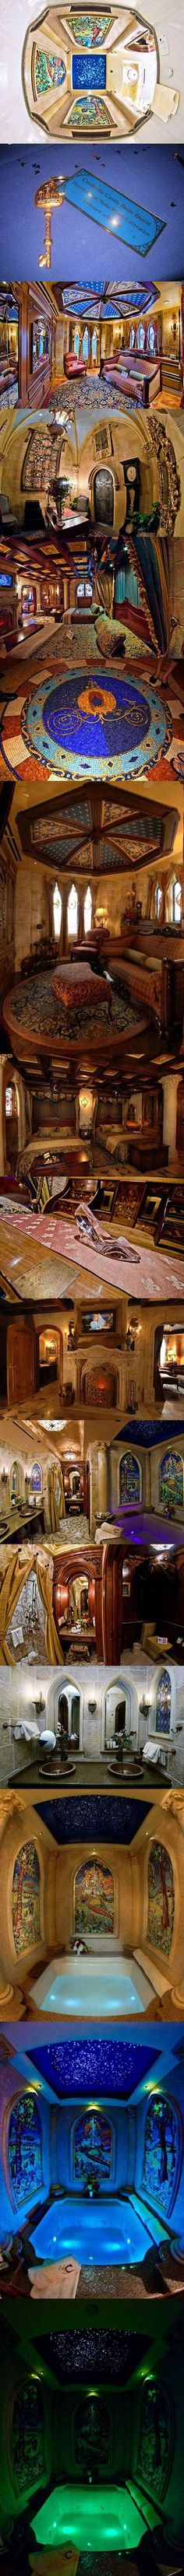 14 Pictures That Show Whats Actually Inside Cinderellas Castle at Walt Disney World